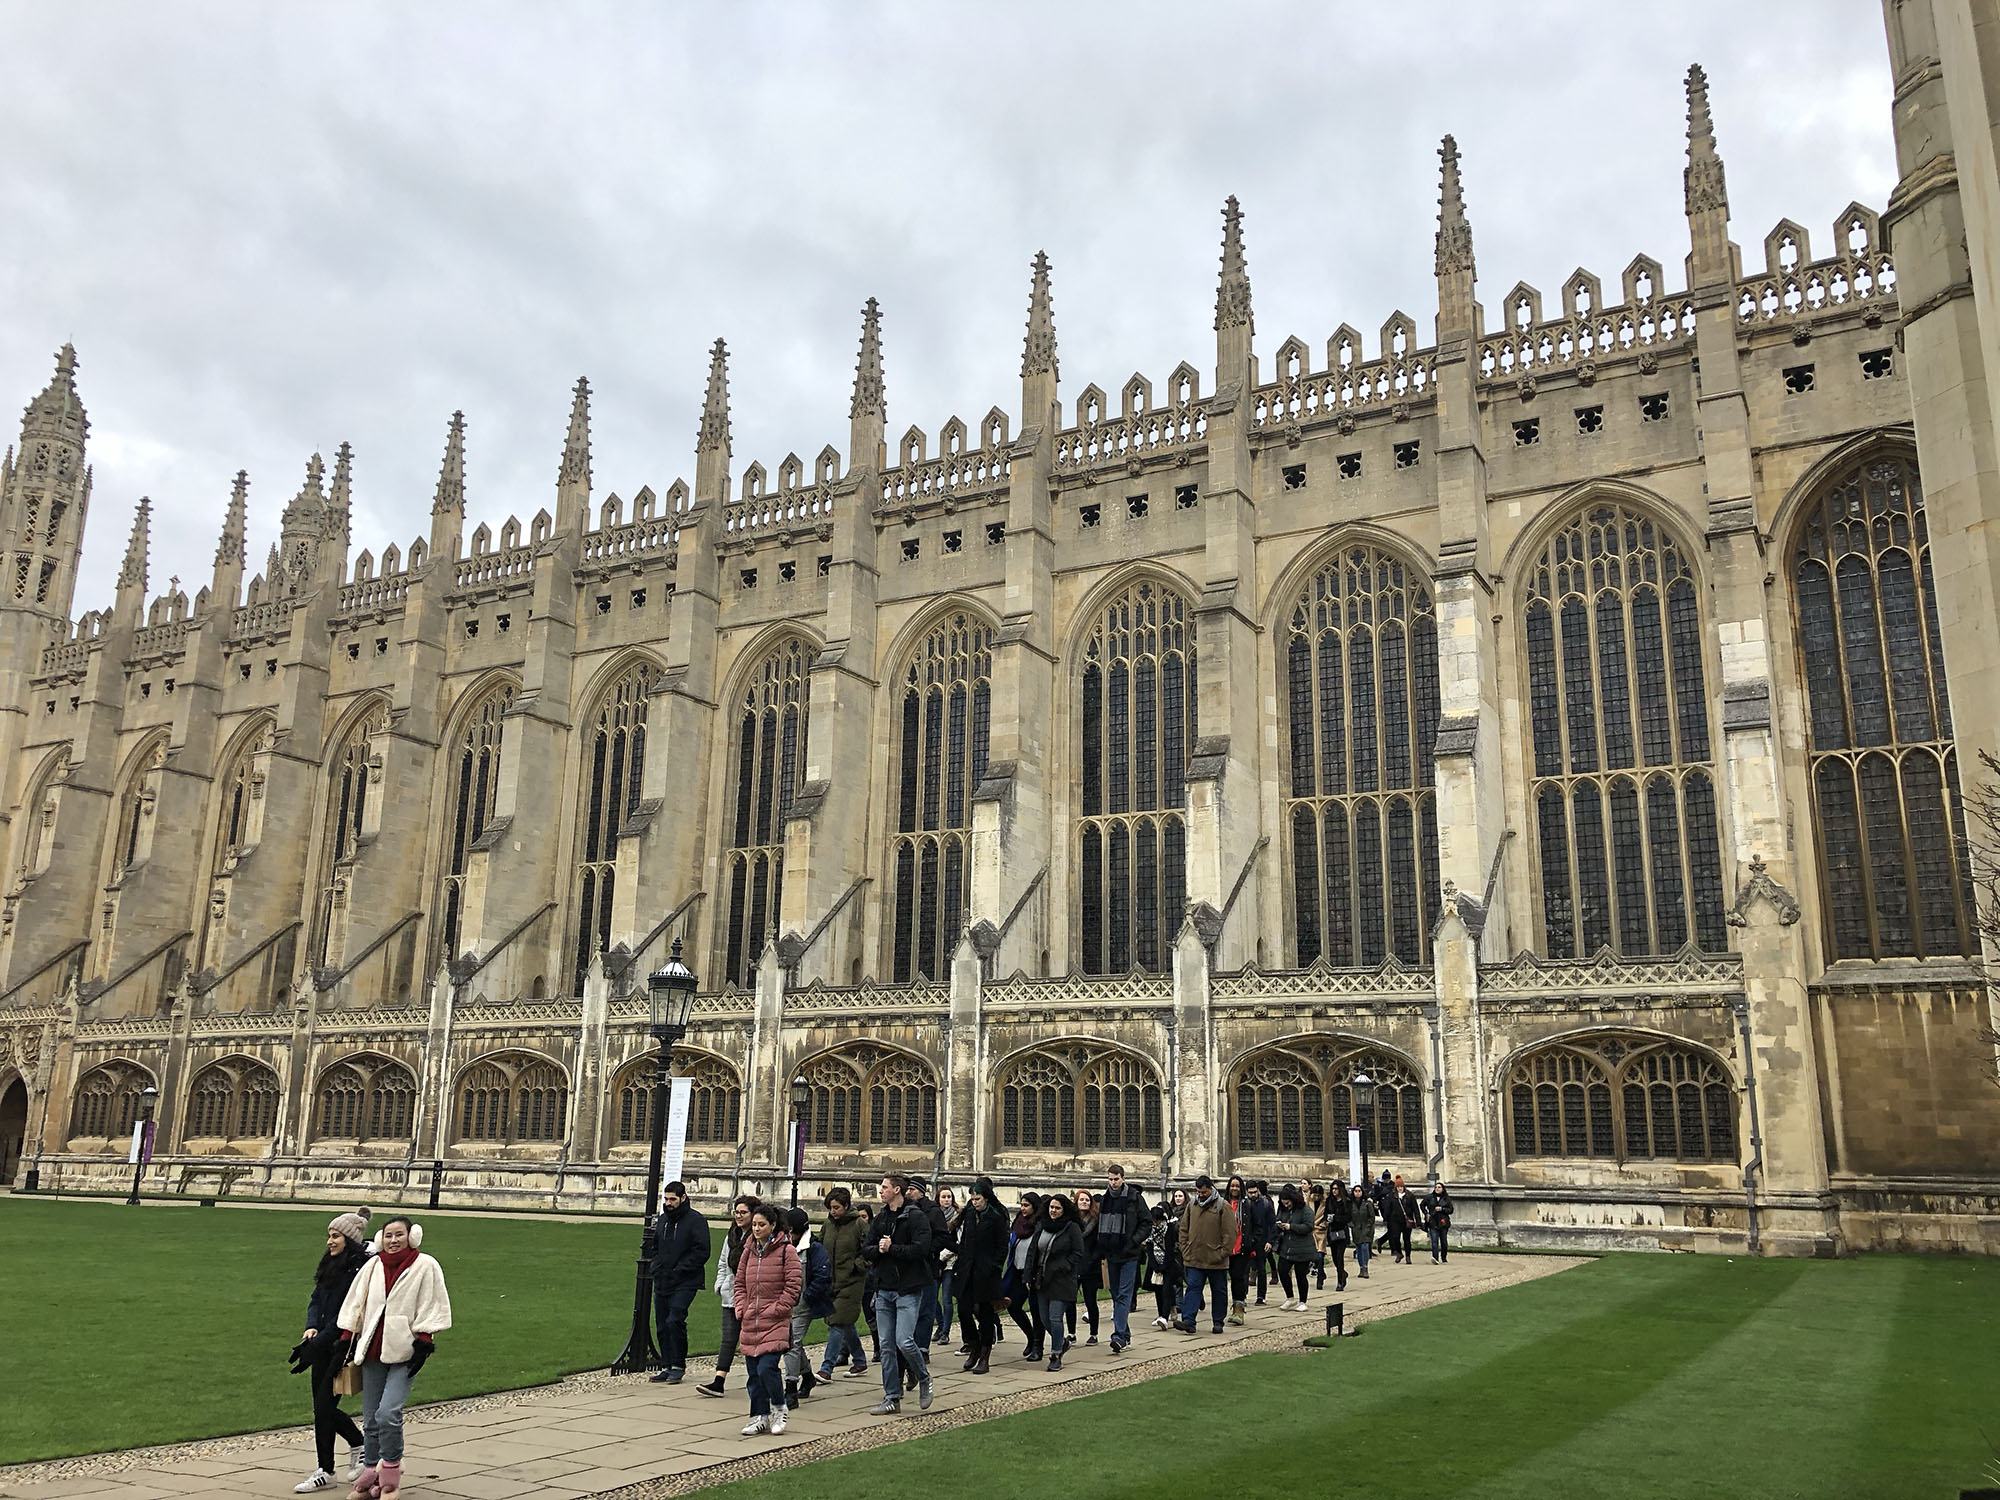 Fresno State students leaving King's college Cambridge after two wonderful tours of the Chapel (behind).